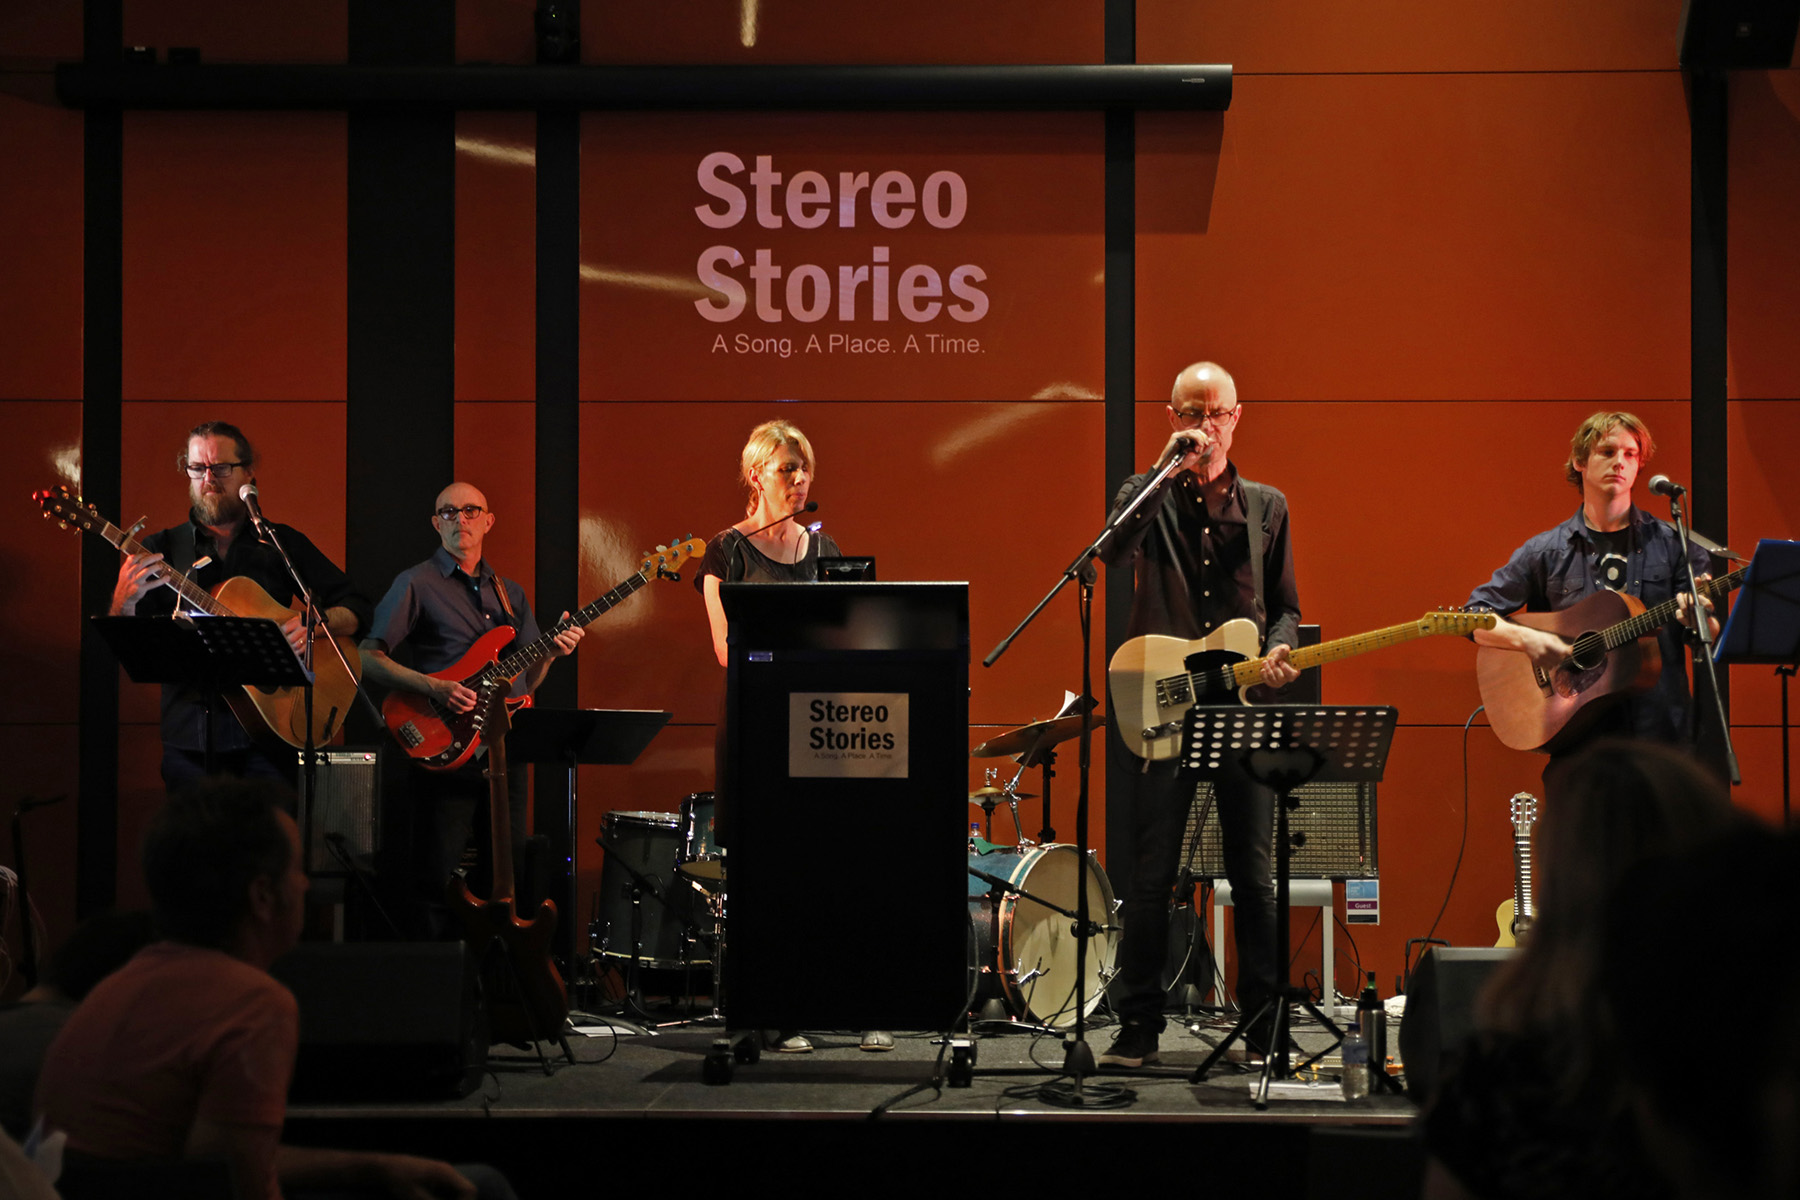 Zoe Krupka and The Stereo Stories Band. (Drummer Anthony Shortte obscured by lectern!) Photo by Patrick Reynolds